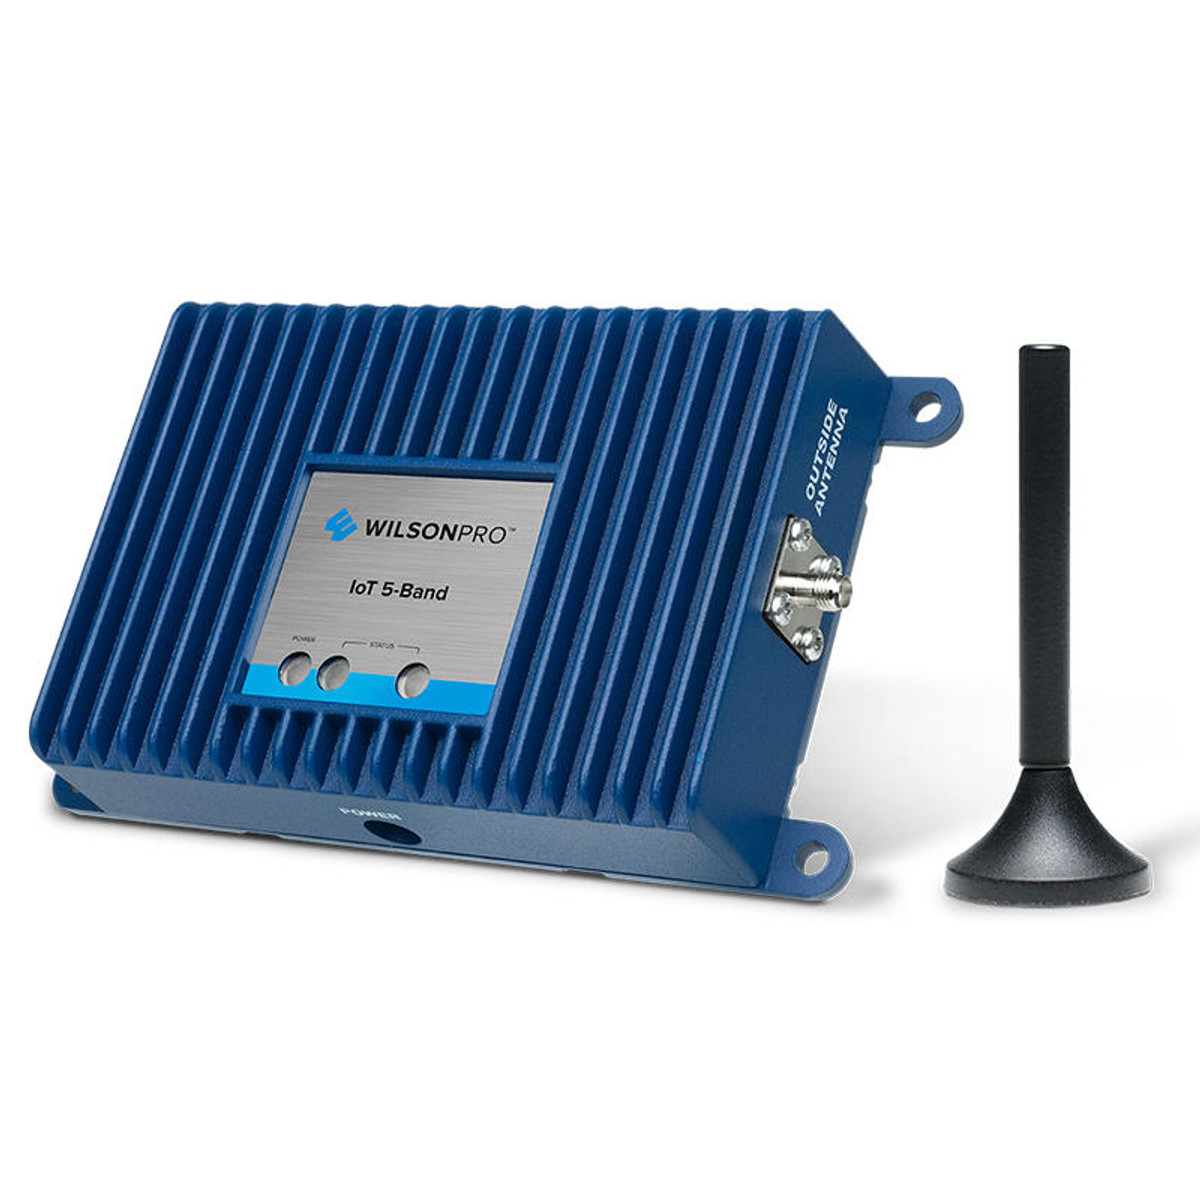 Wilson Electronics Pro IoT 5 Band Signal Booster, DC Powered Signal Booster, Refurbished or 460219R